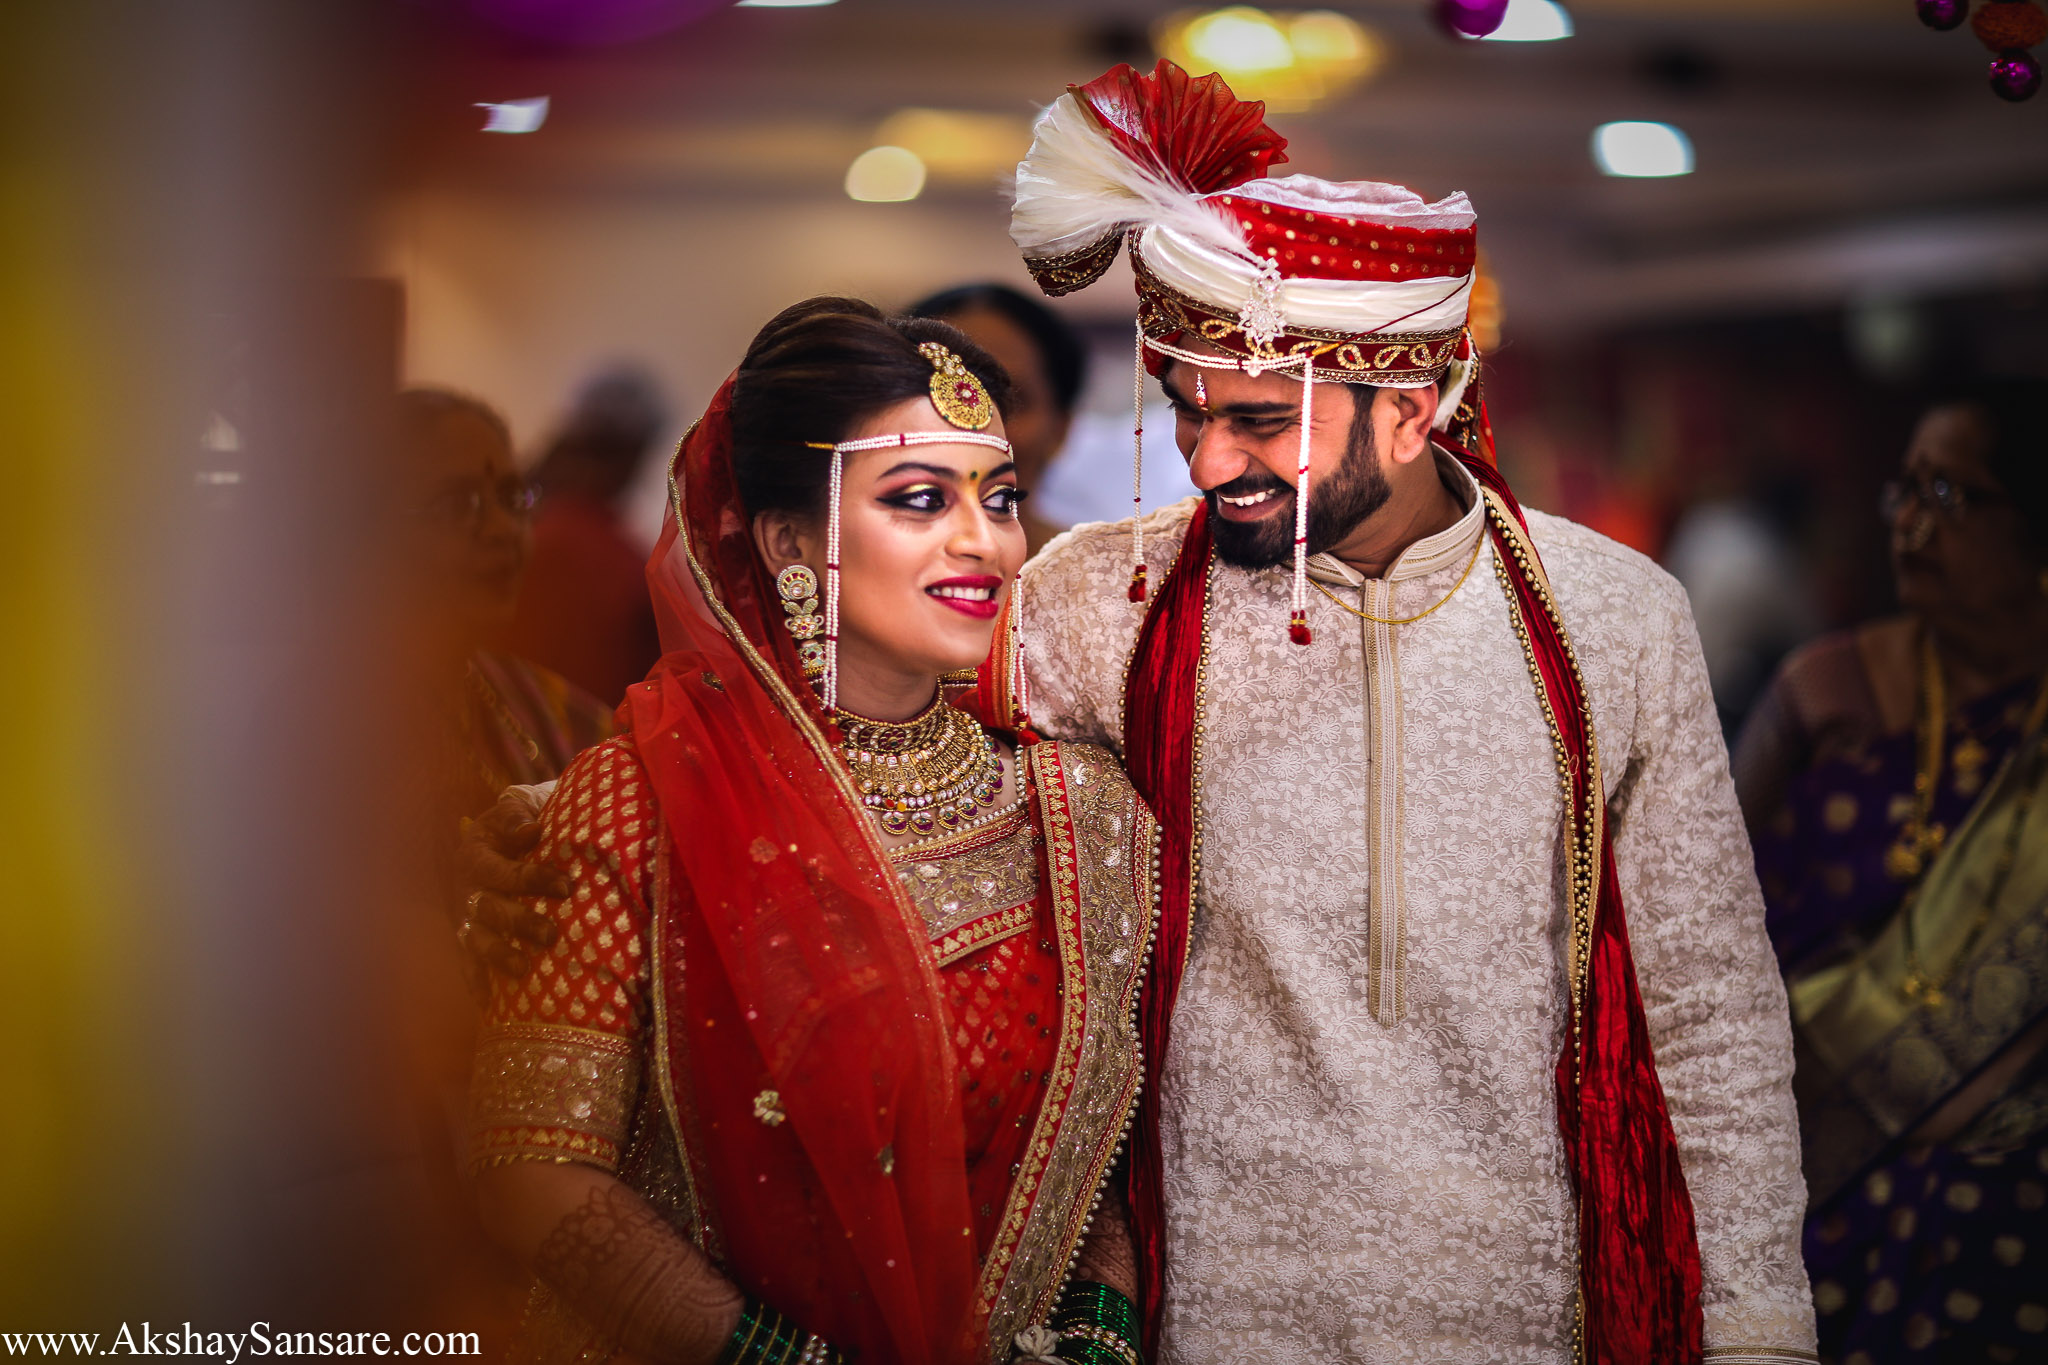 Ajay & Devika Akshay Sansare Photography Best Candid wedding photographer in mumbai india3.jpg